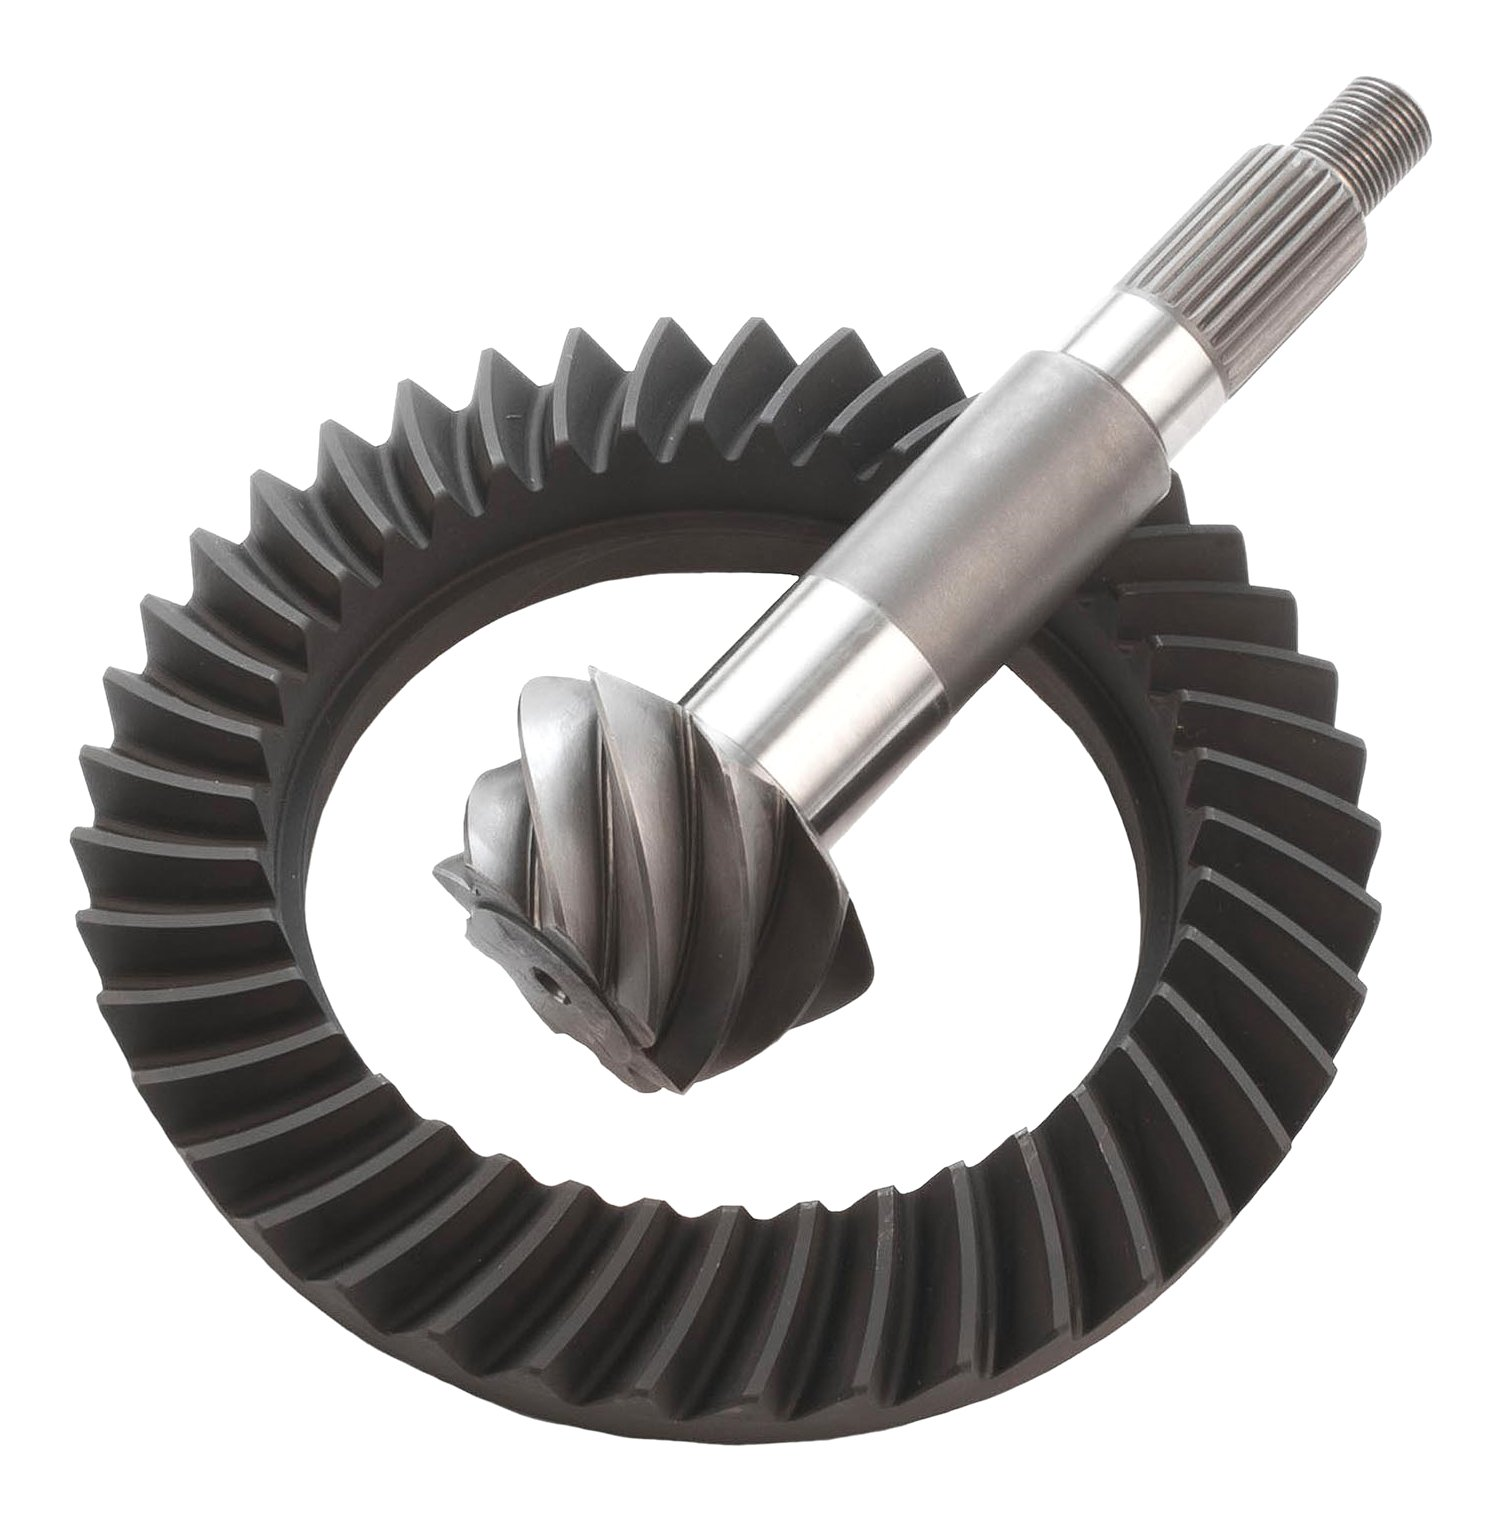 ExCel D44489 Ring and Pinion (DANA 44 4.89), 1 Pack